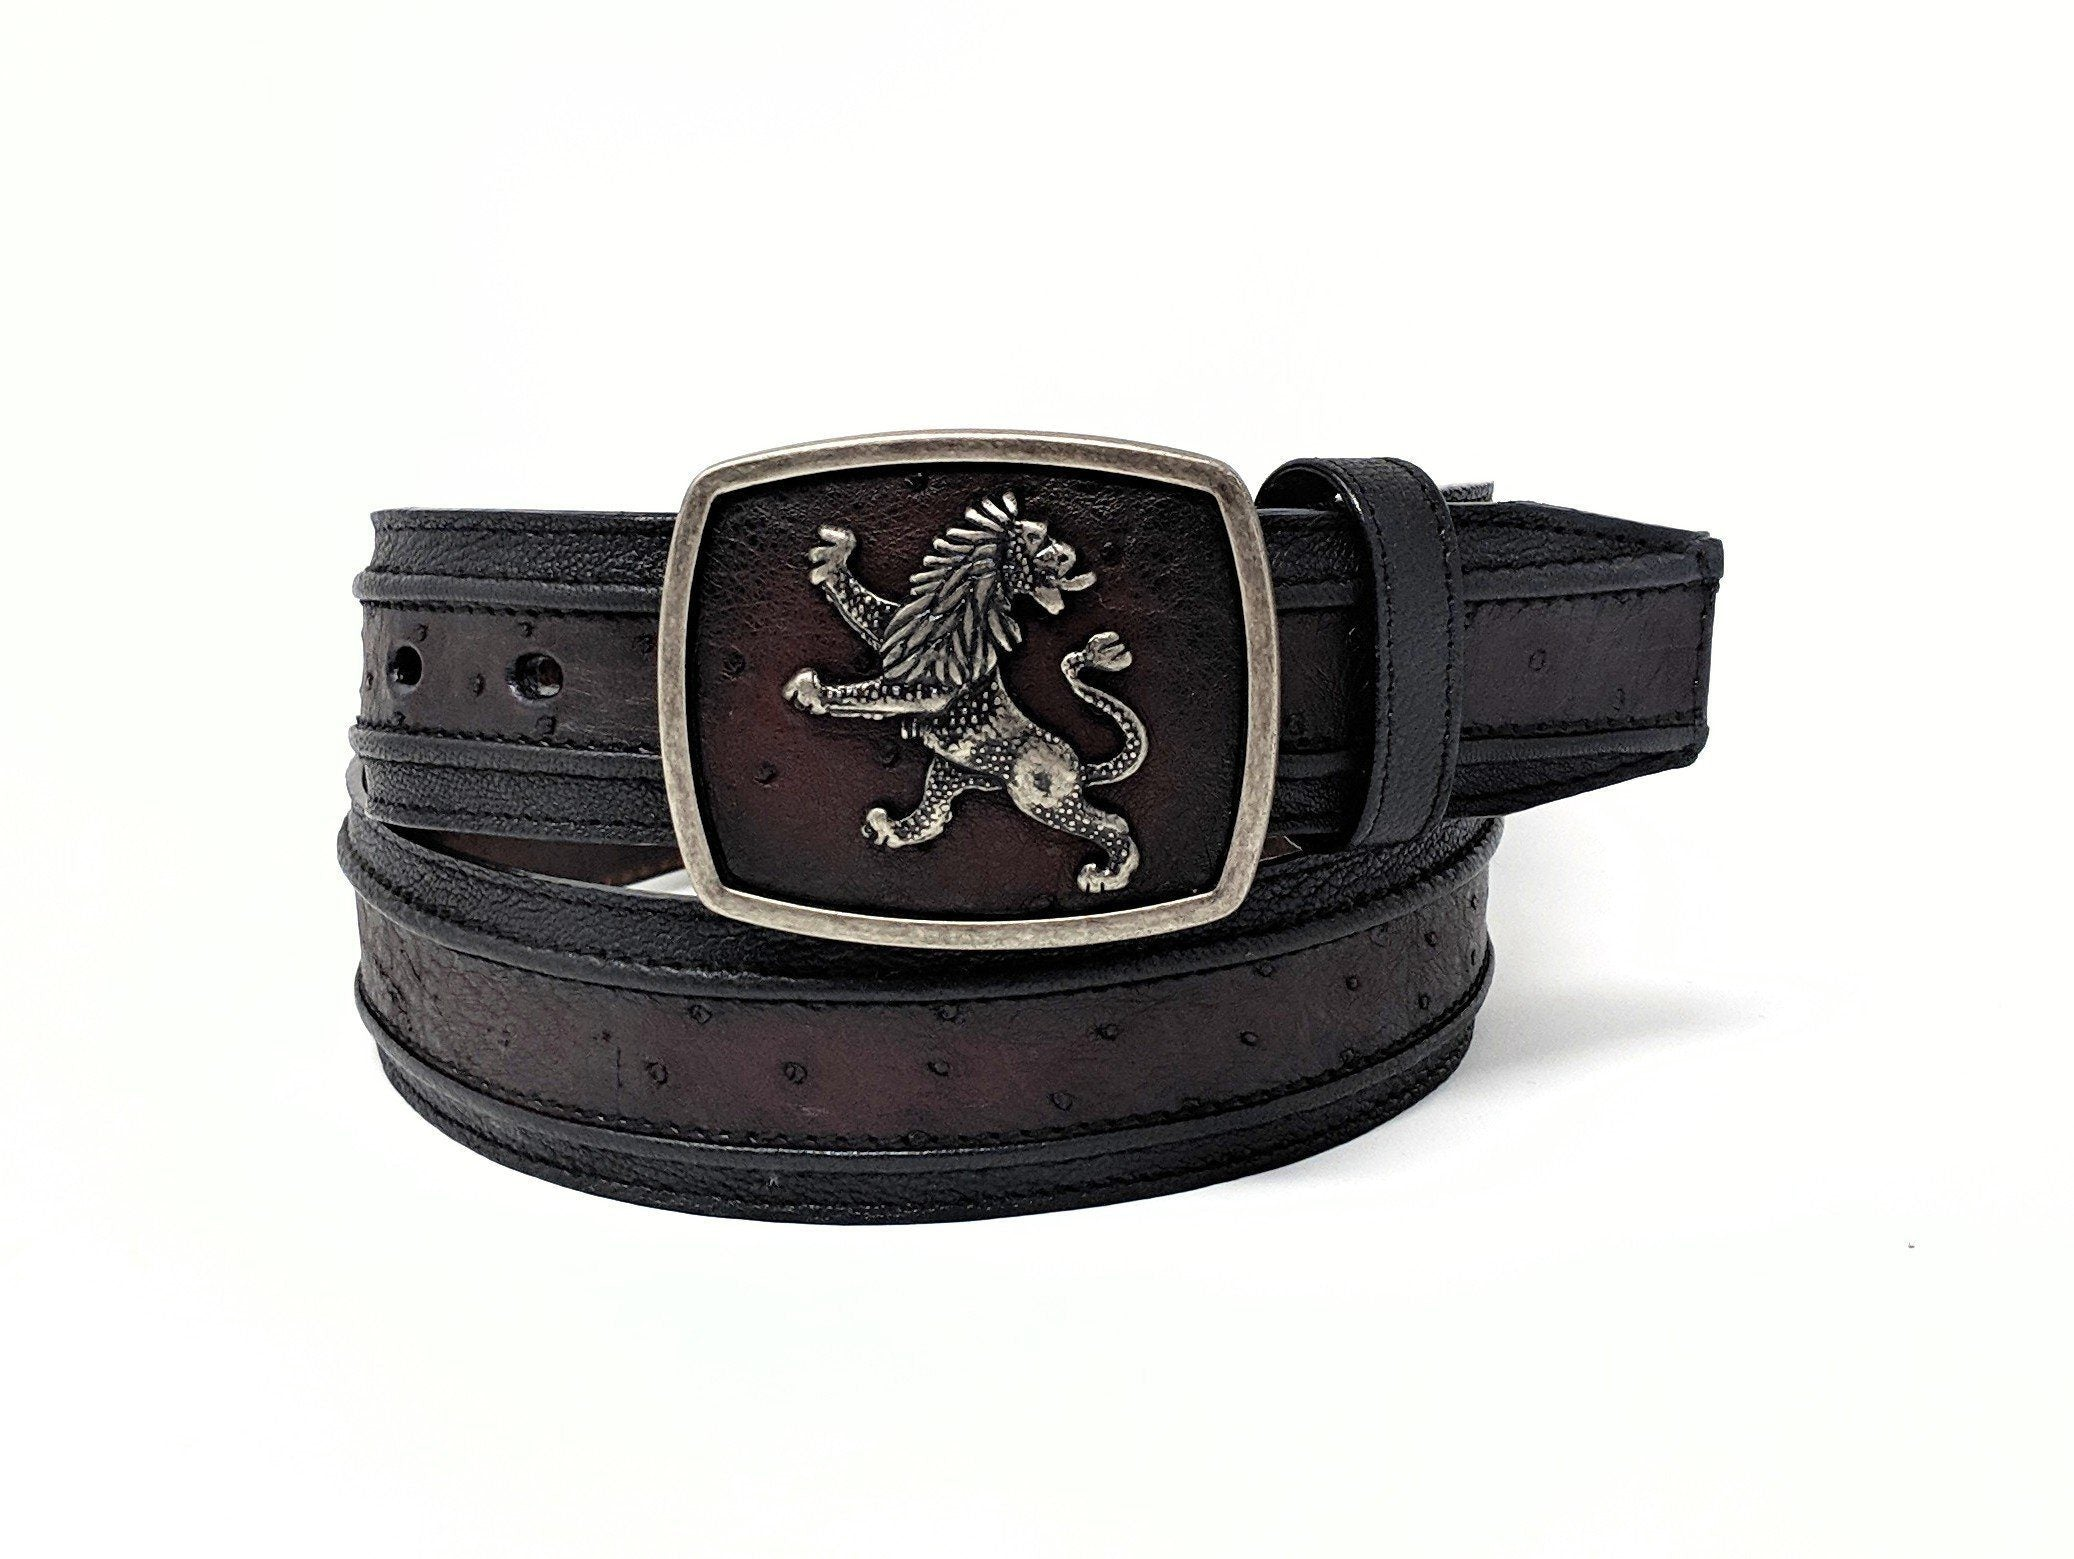 4975a74ef59 Cuadra Belt | Handmade Ostrich Belly Belt